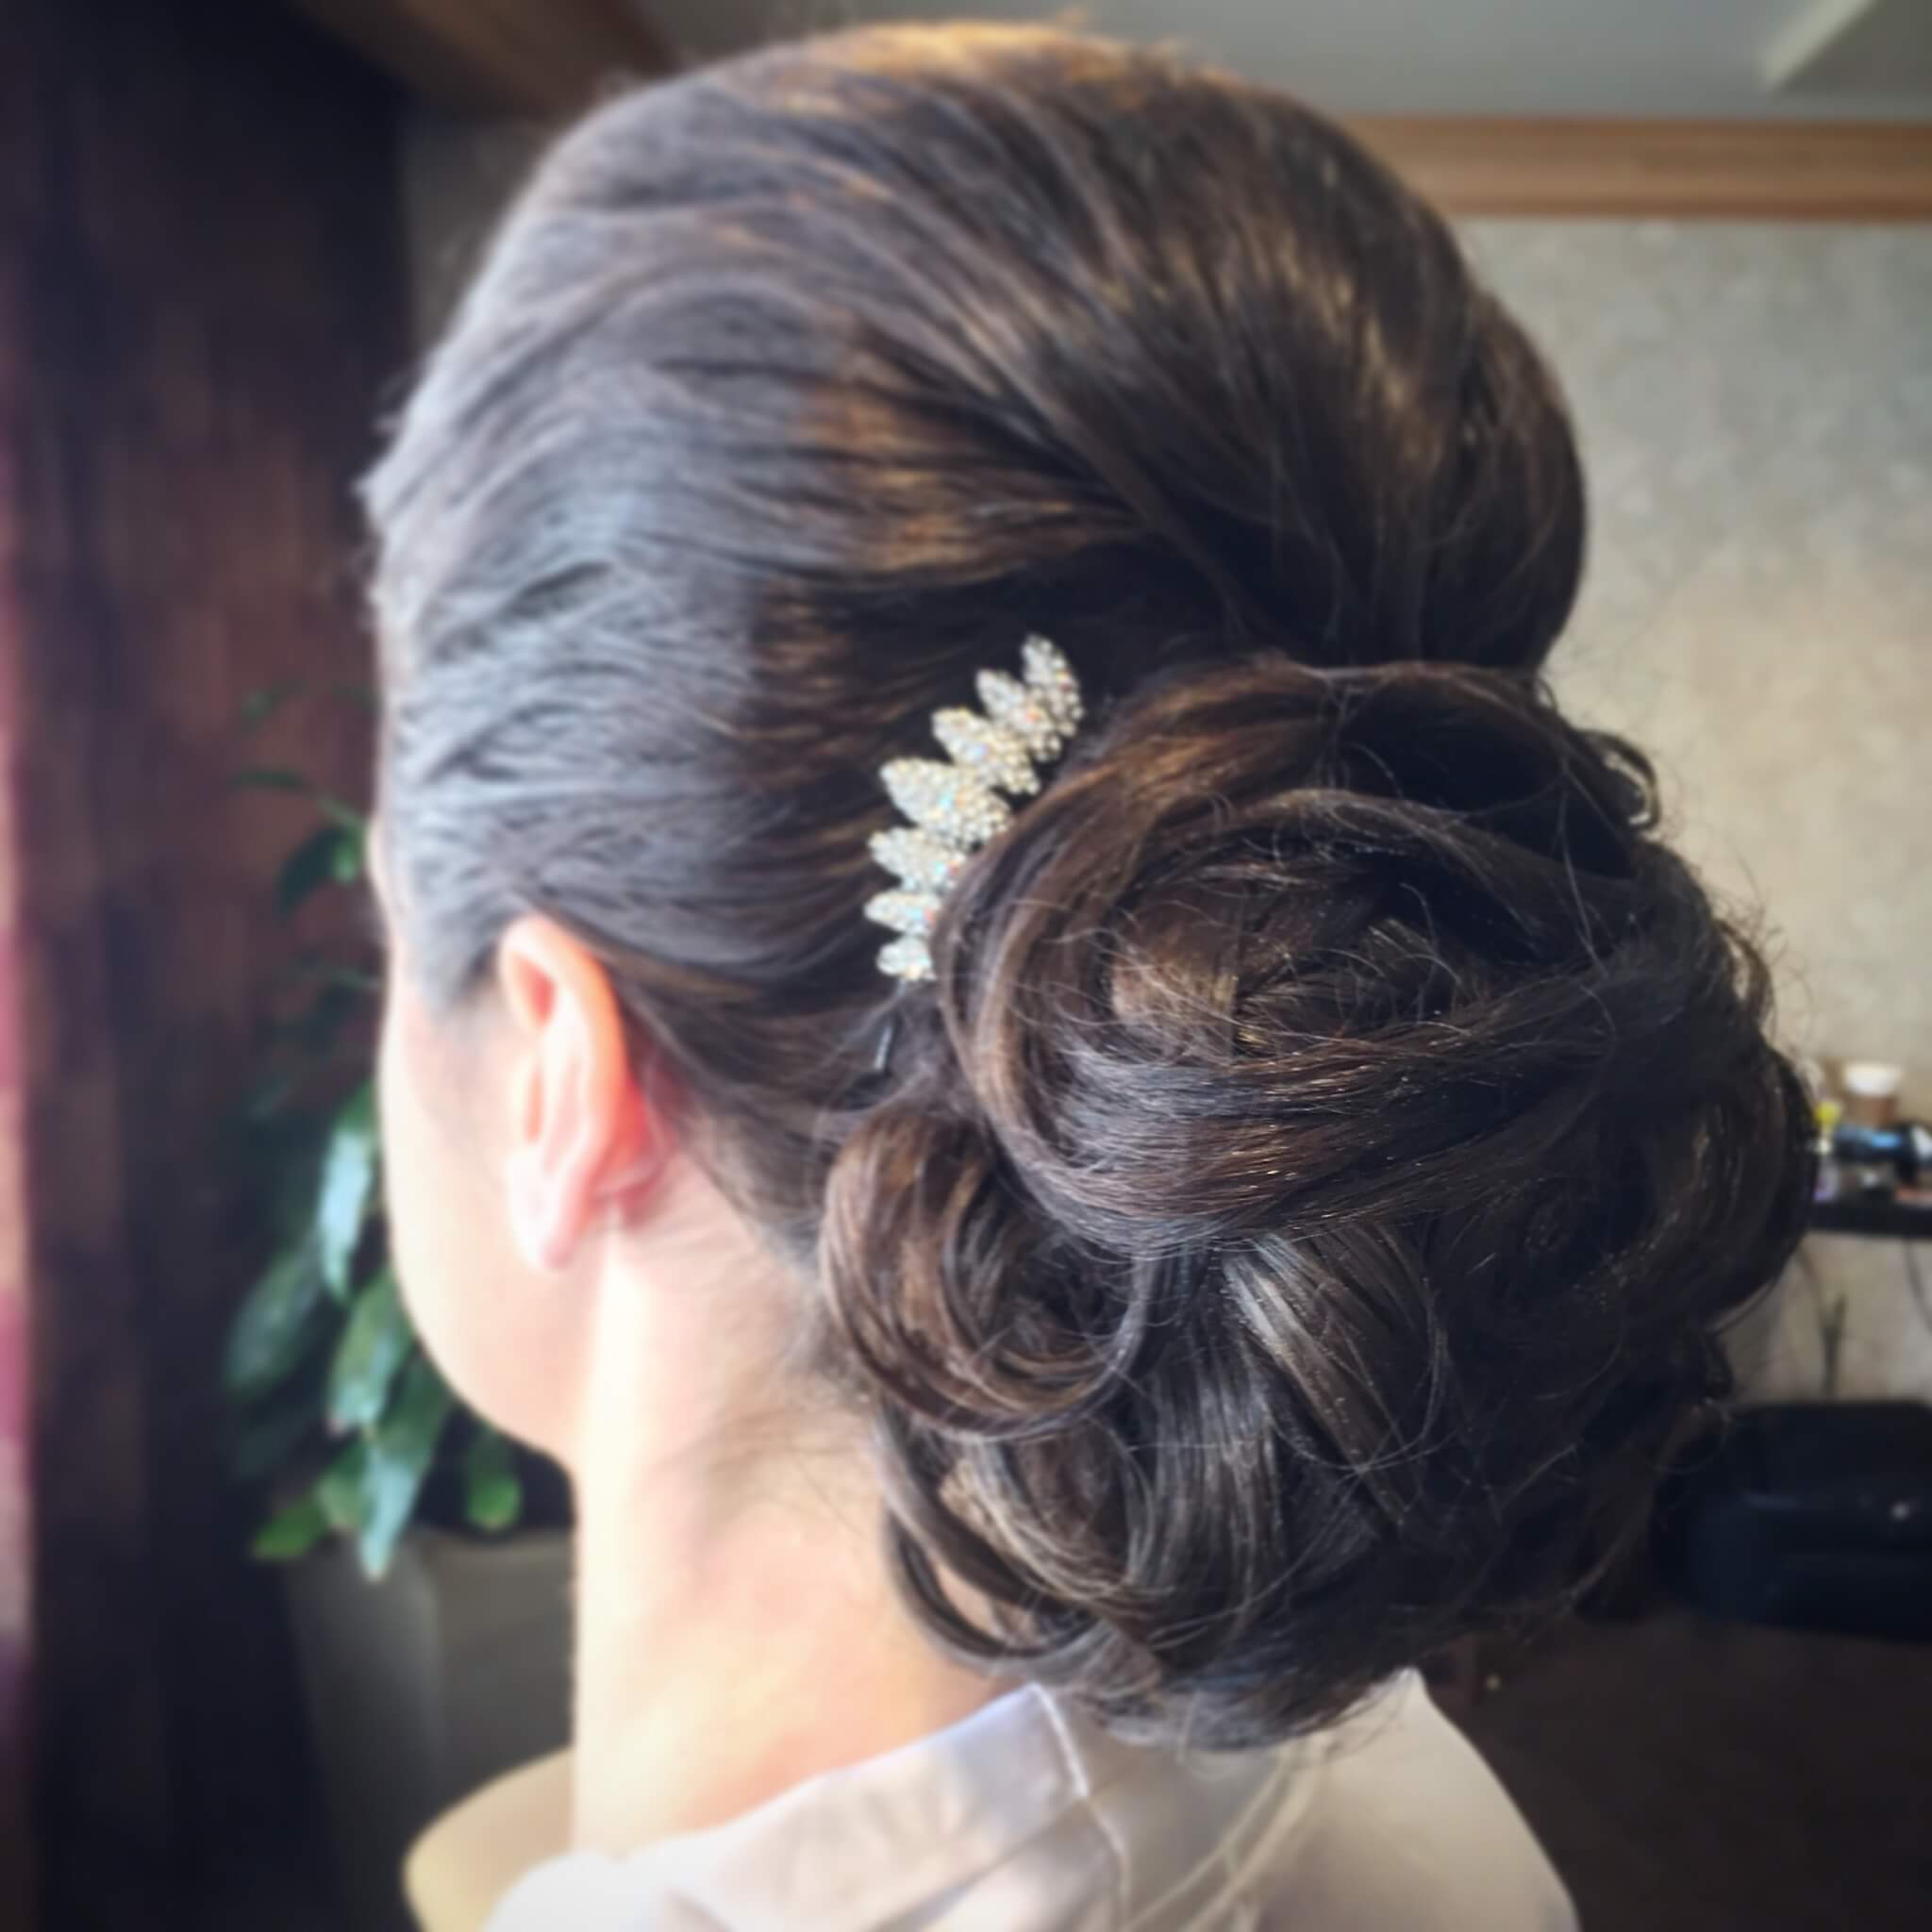 hair-salon-jacksonville-wedding-hairstyles-99-03